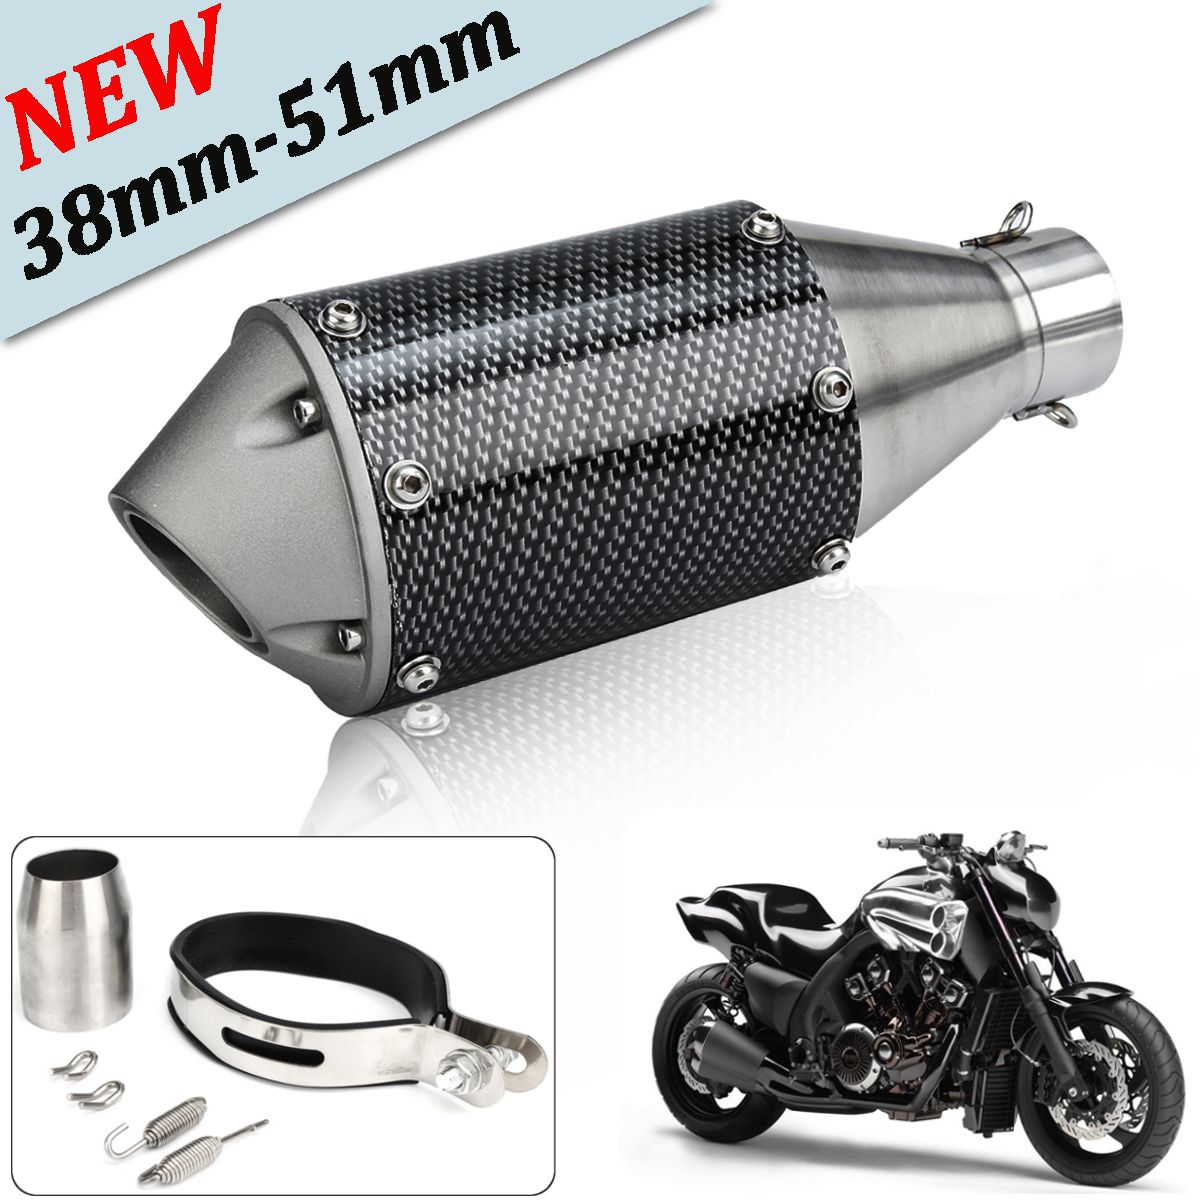 Universal 38-51mm Motorcycle dirt bike exhaust escape Modified Scooter Exhaust Muffle Fit for Honda for YAMAHA for Kawasaki